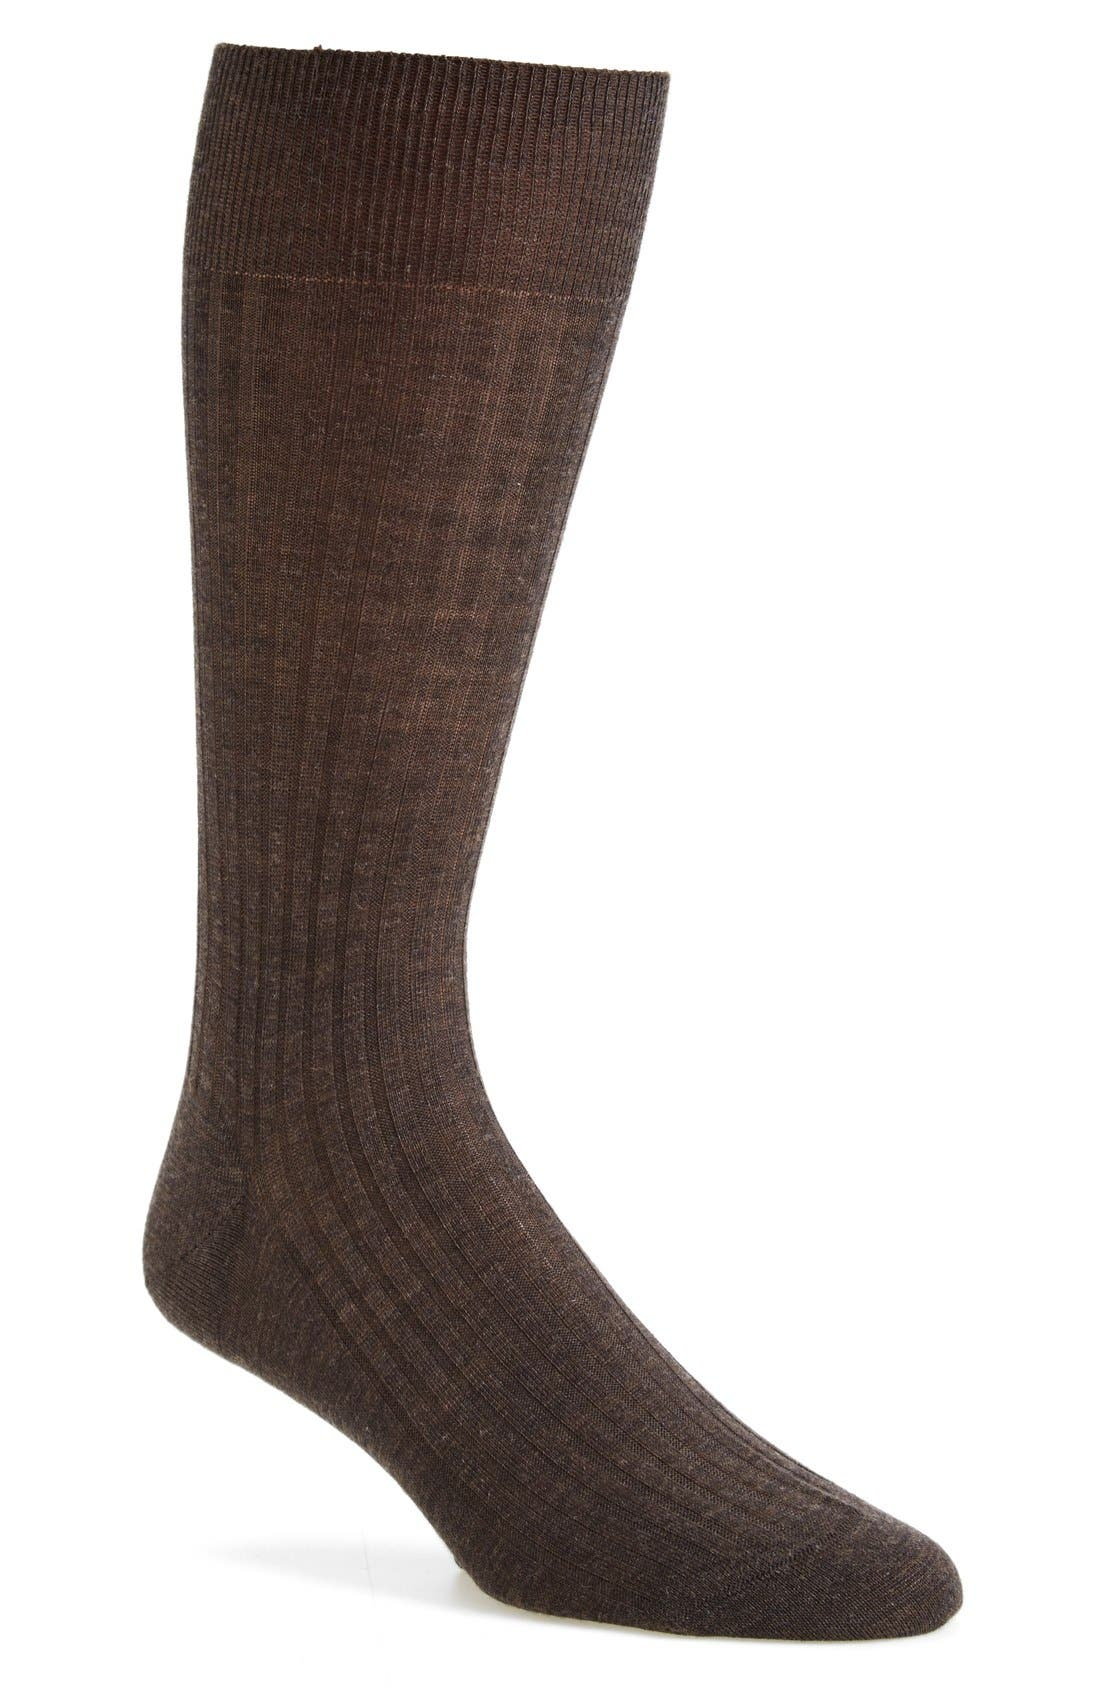 Pantherella Merino Wool Blend Socks